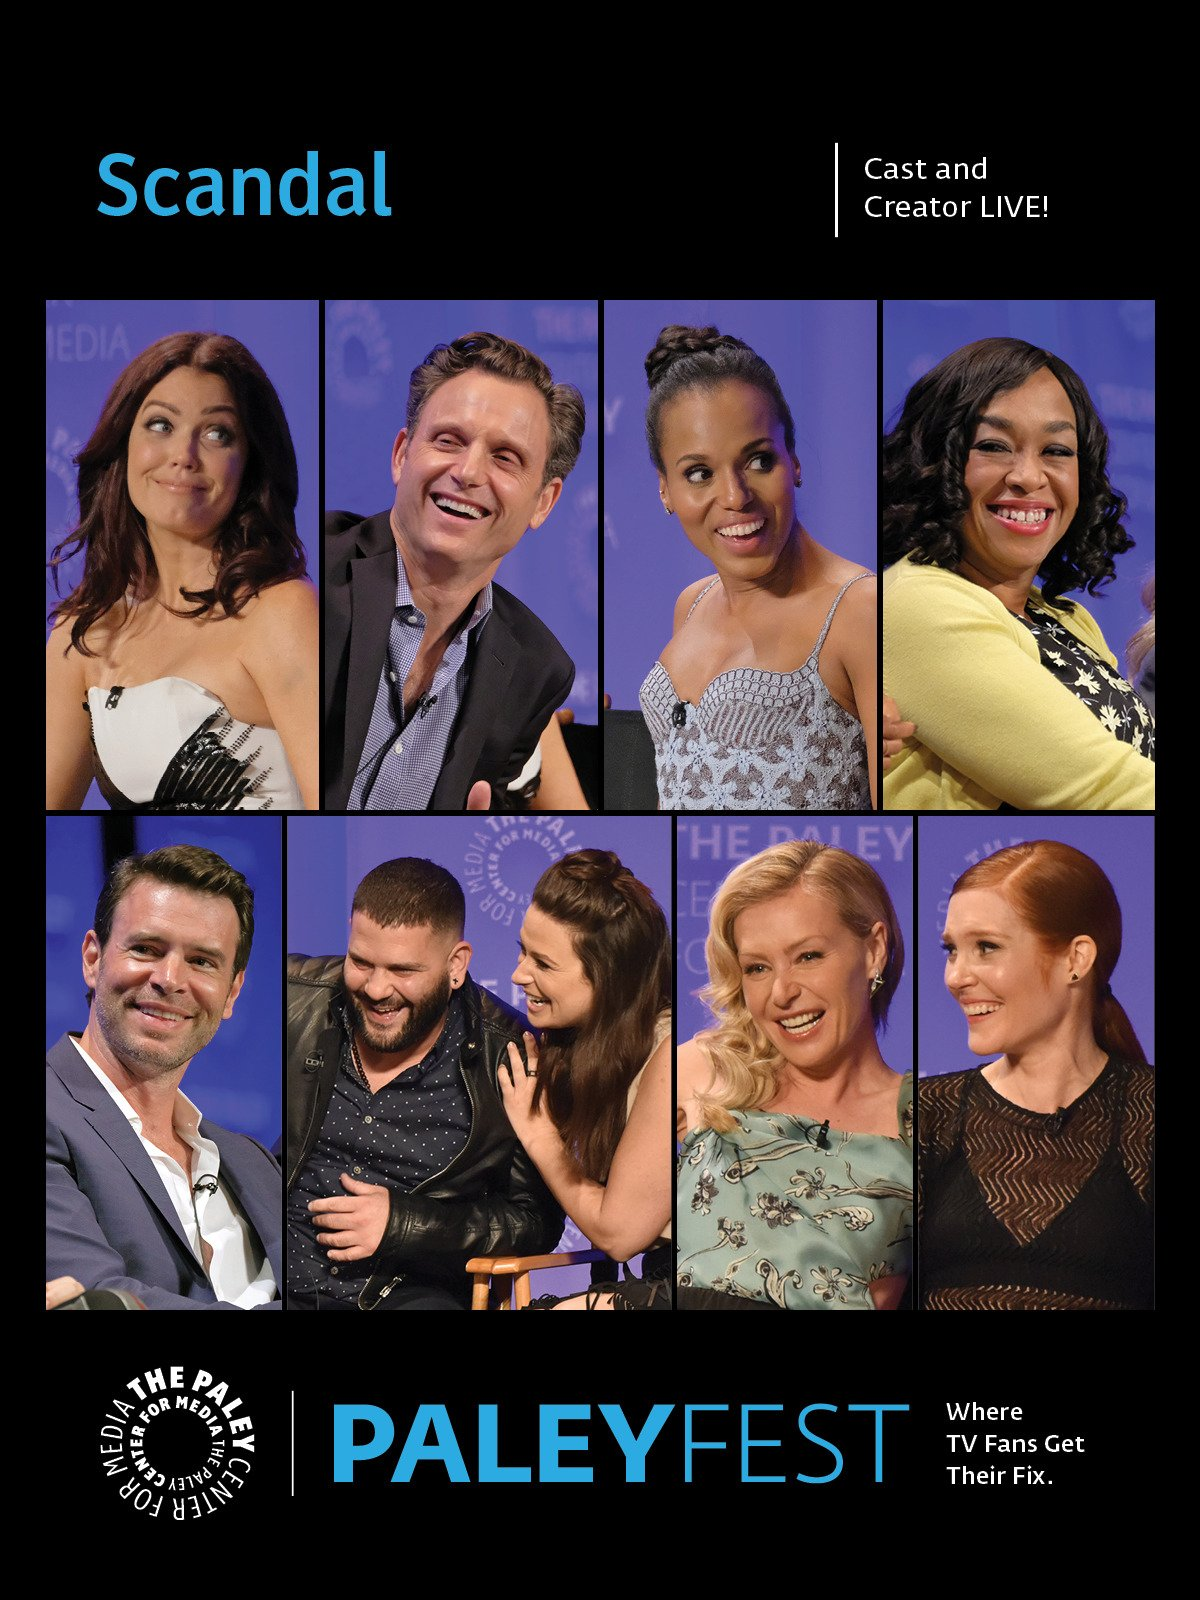 Scandal: Cast and Creator PaleyFest